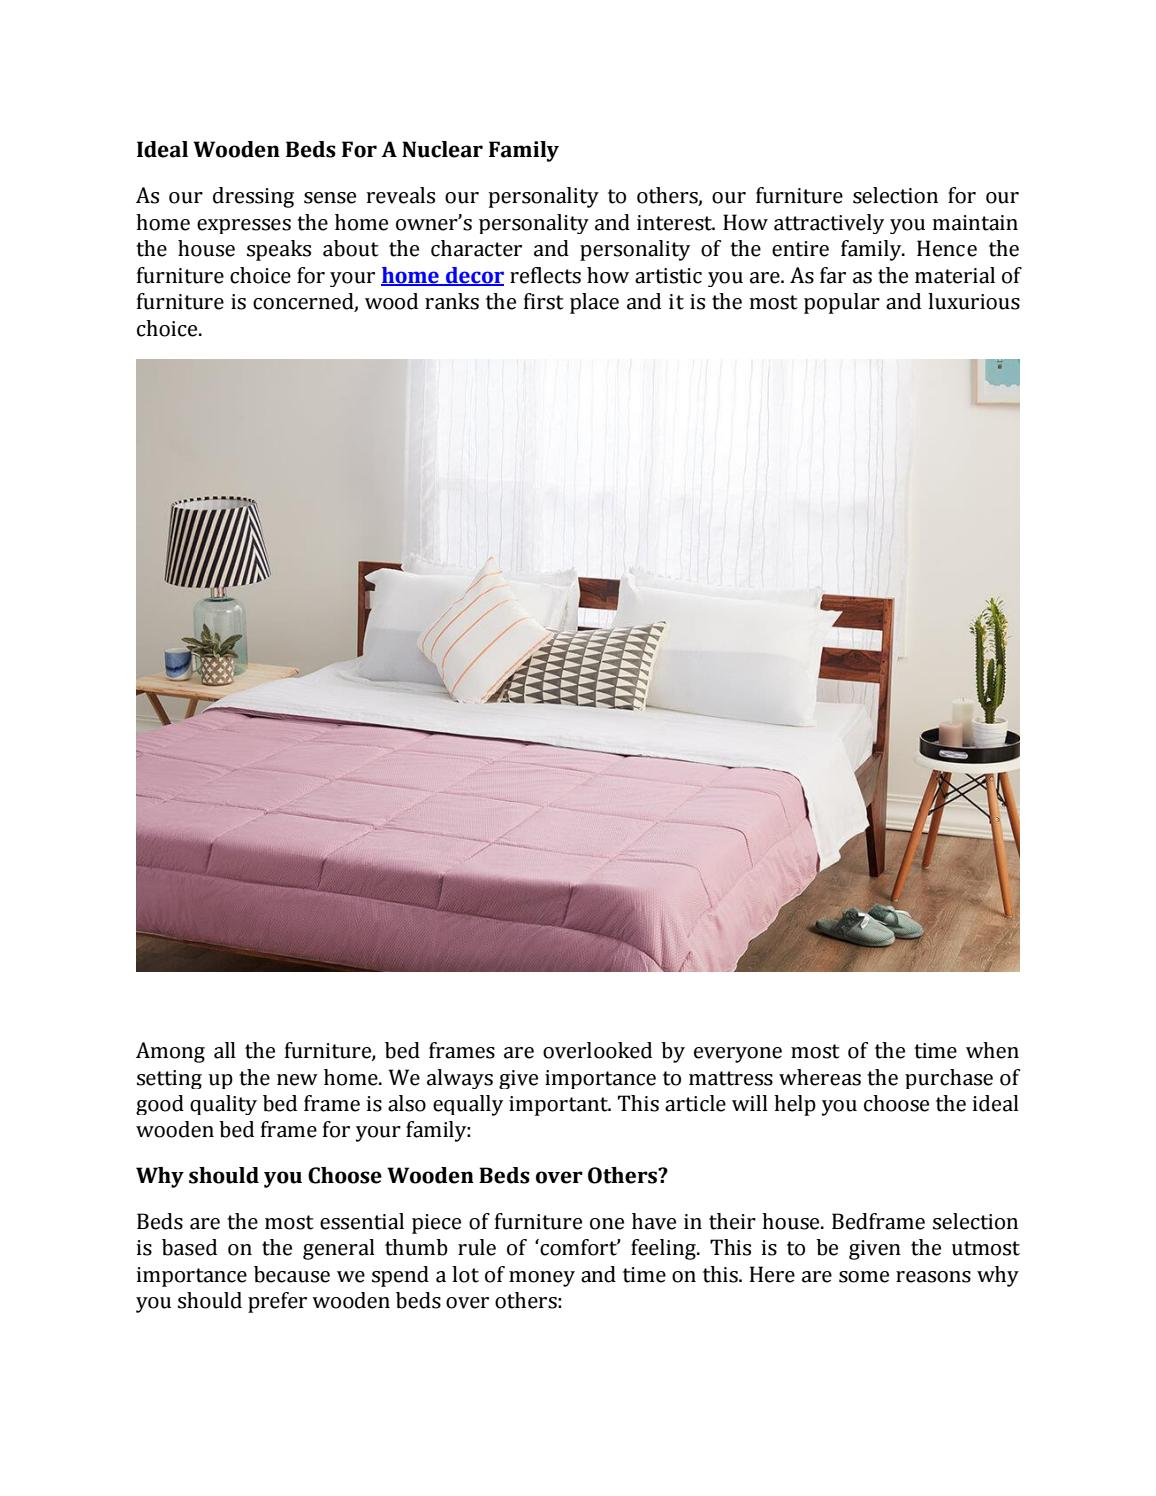 Ideal Wooden Beds For A Nuclear Family By Wakefitmattress Issuu